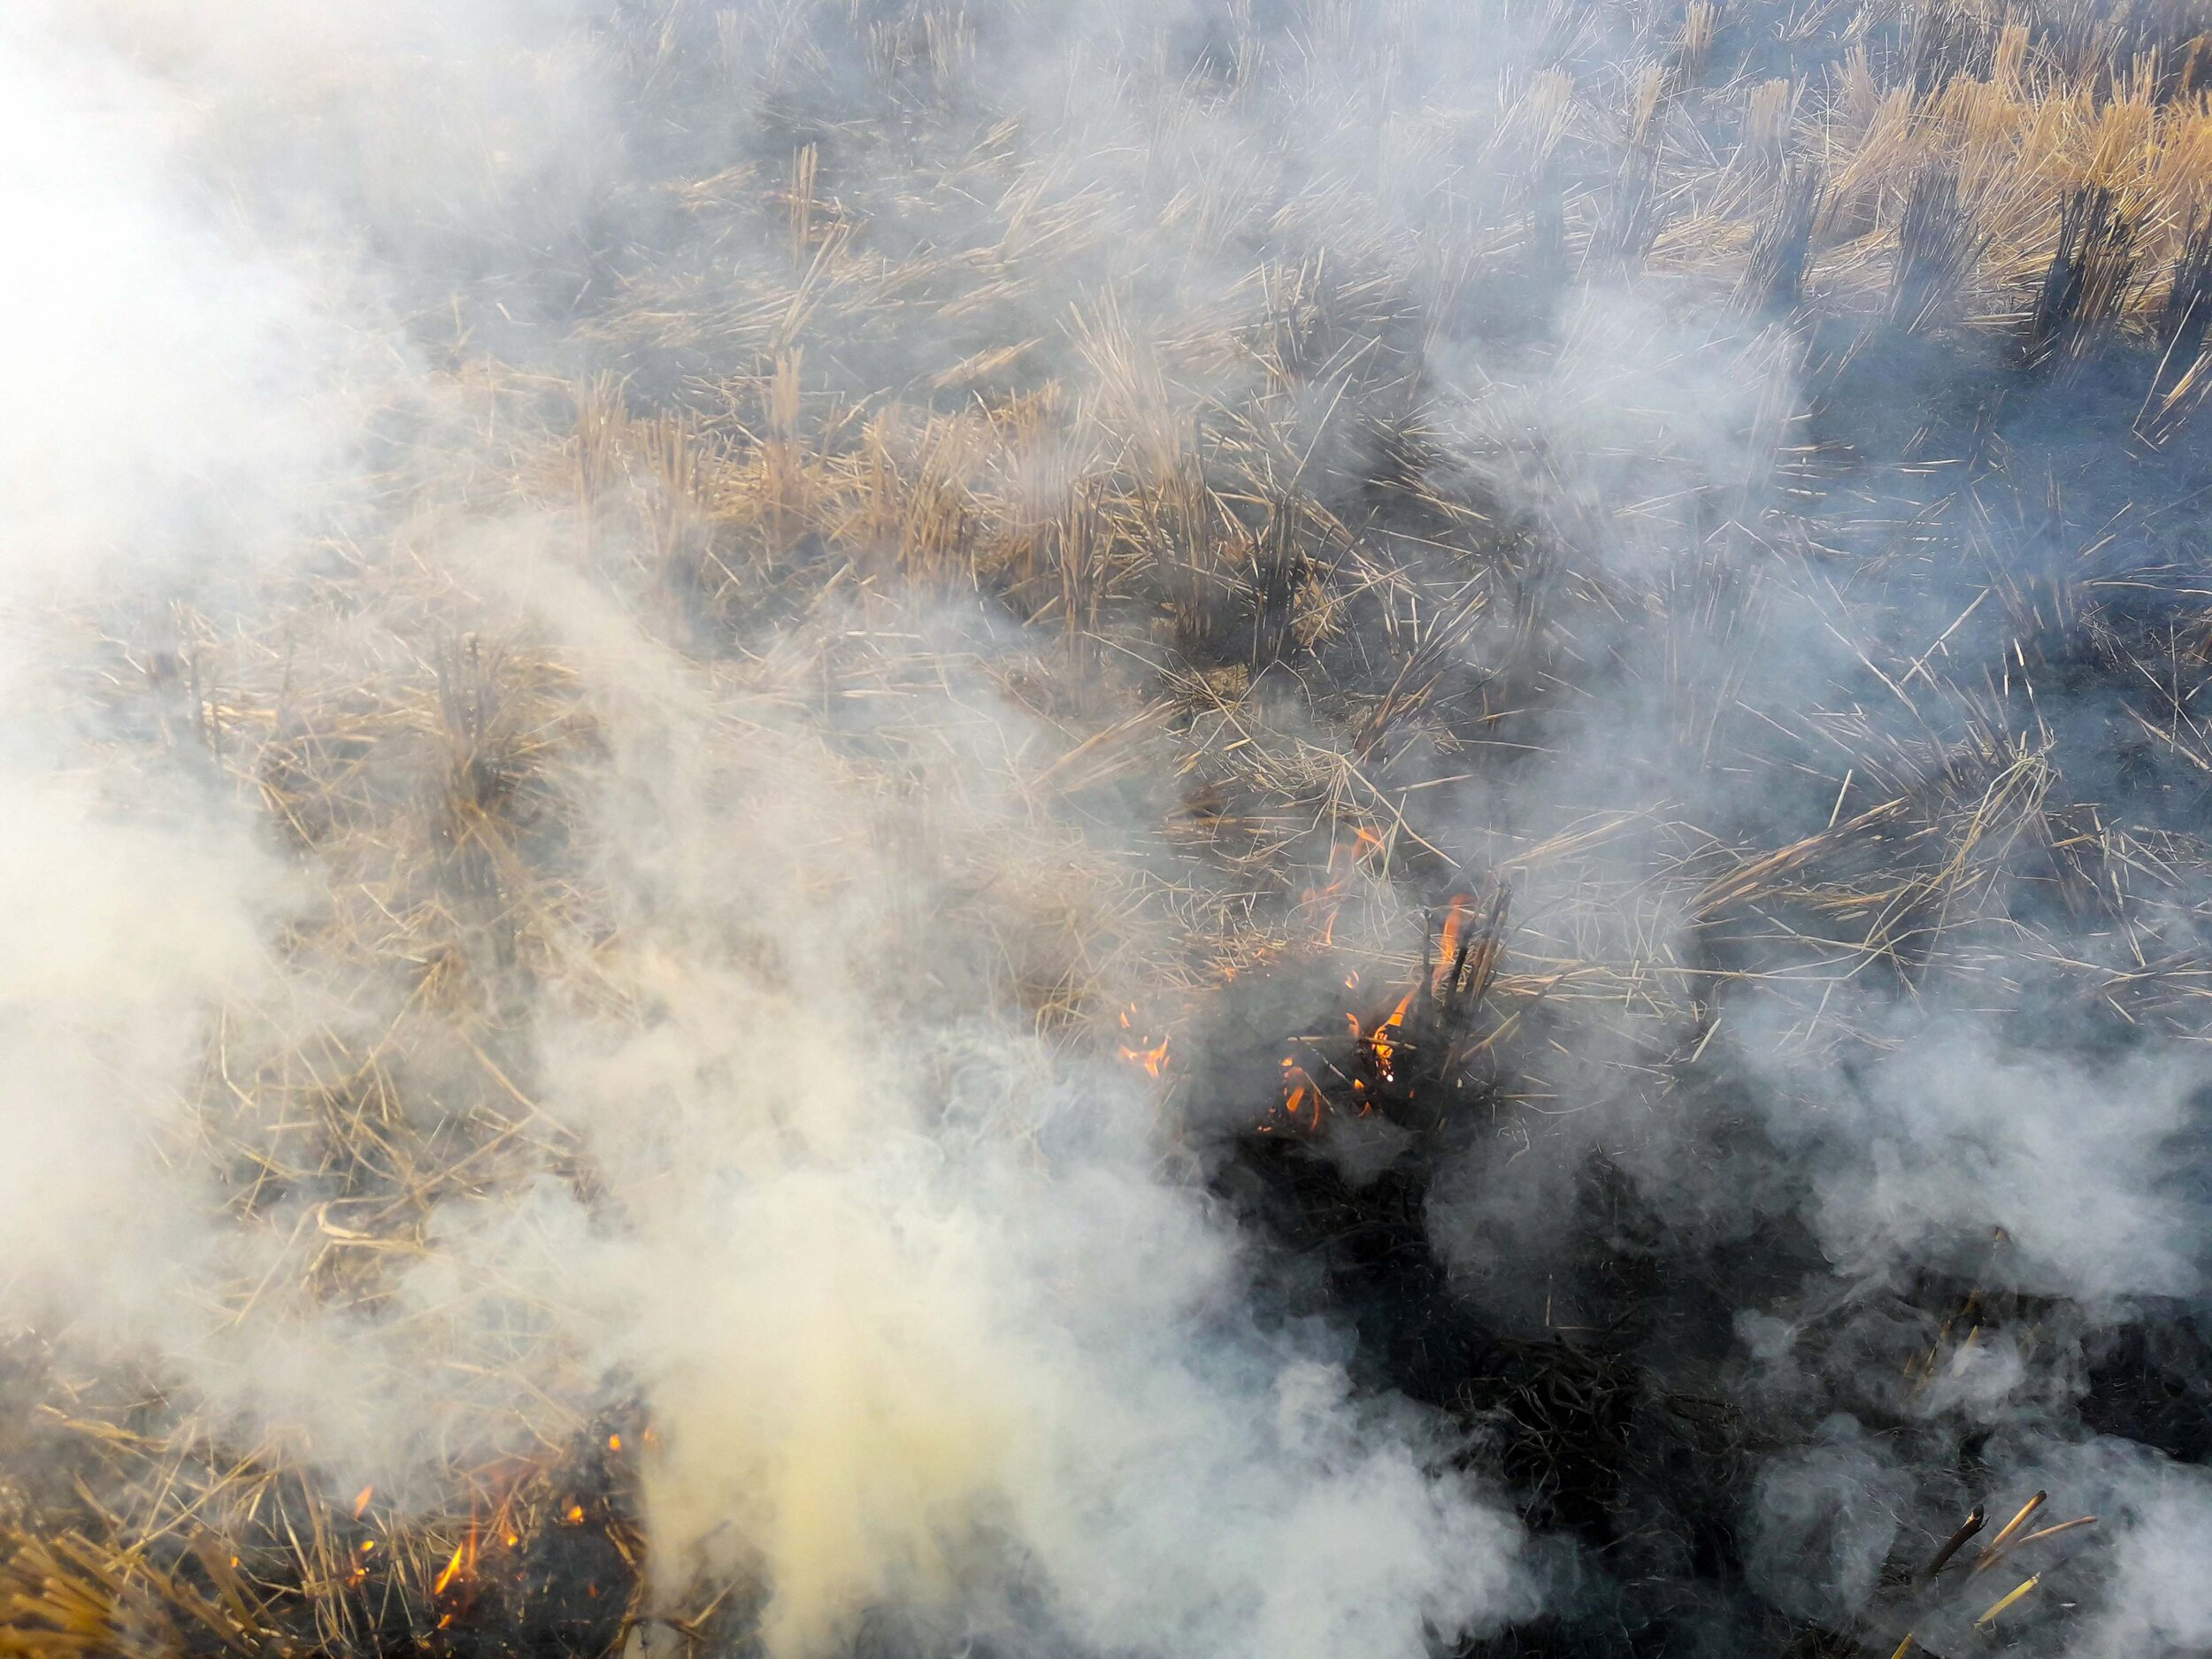 A syndicate consisting of ECOR, DSM, Unilever, and IKEA, will address the challenge of burning rice crop waste by buying and transforming this waste into new materials in India.